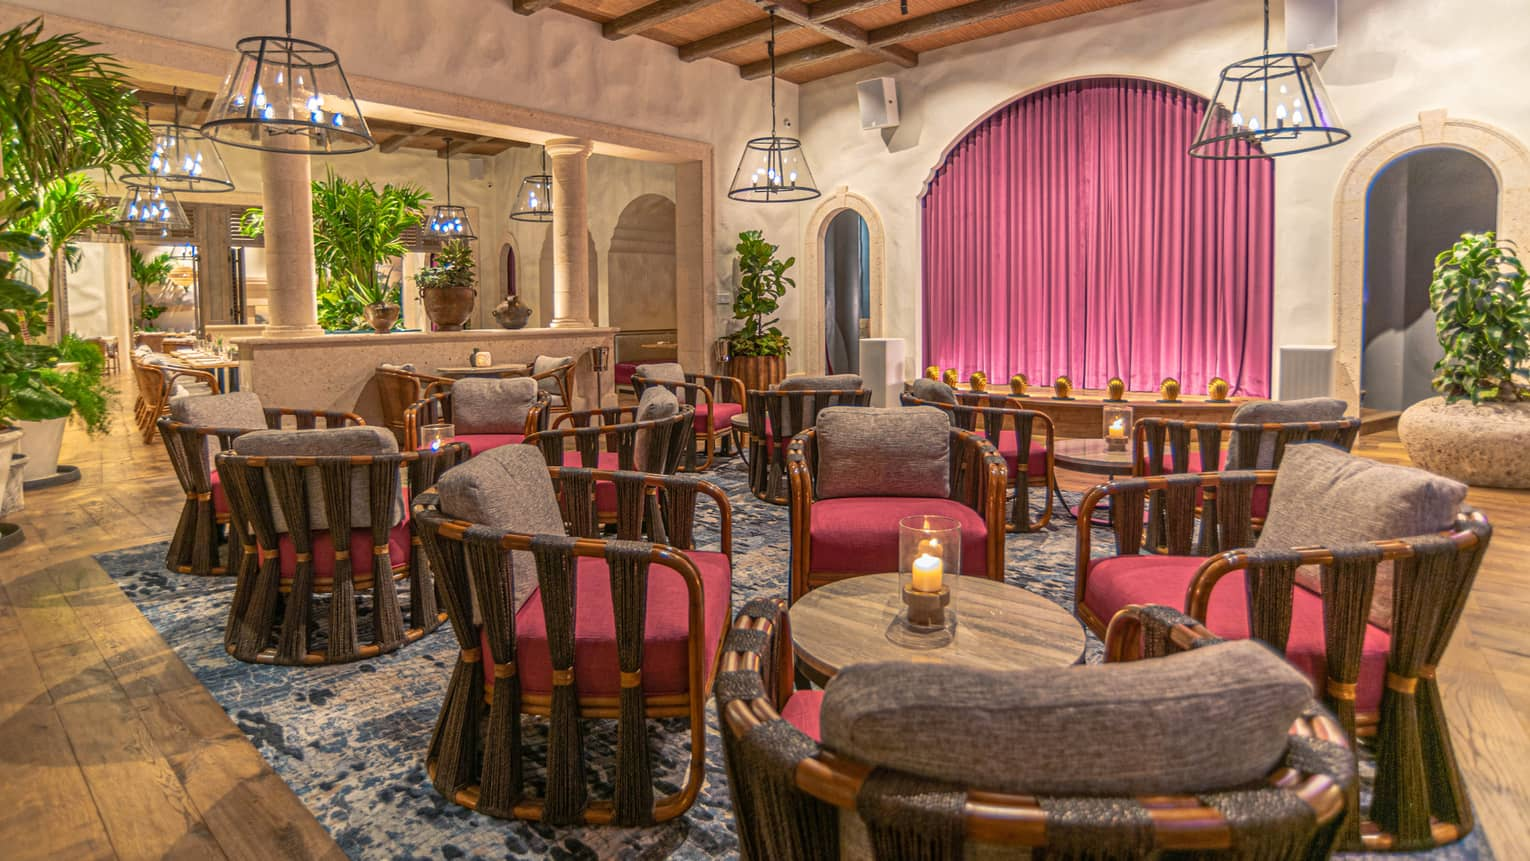 Maximón restaurant's indoor lounge seating and Spanish-inspired archways and pillars.